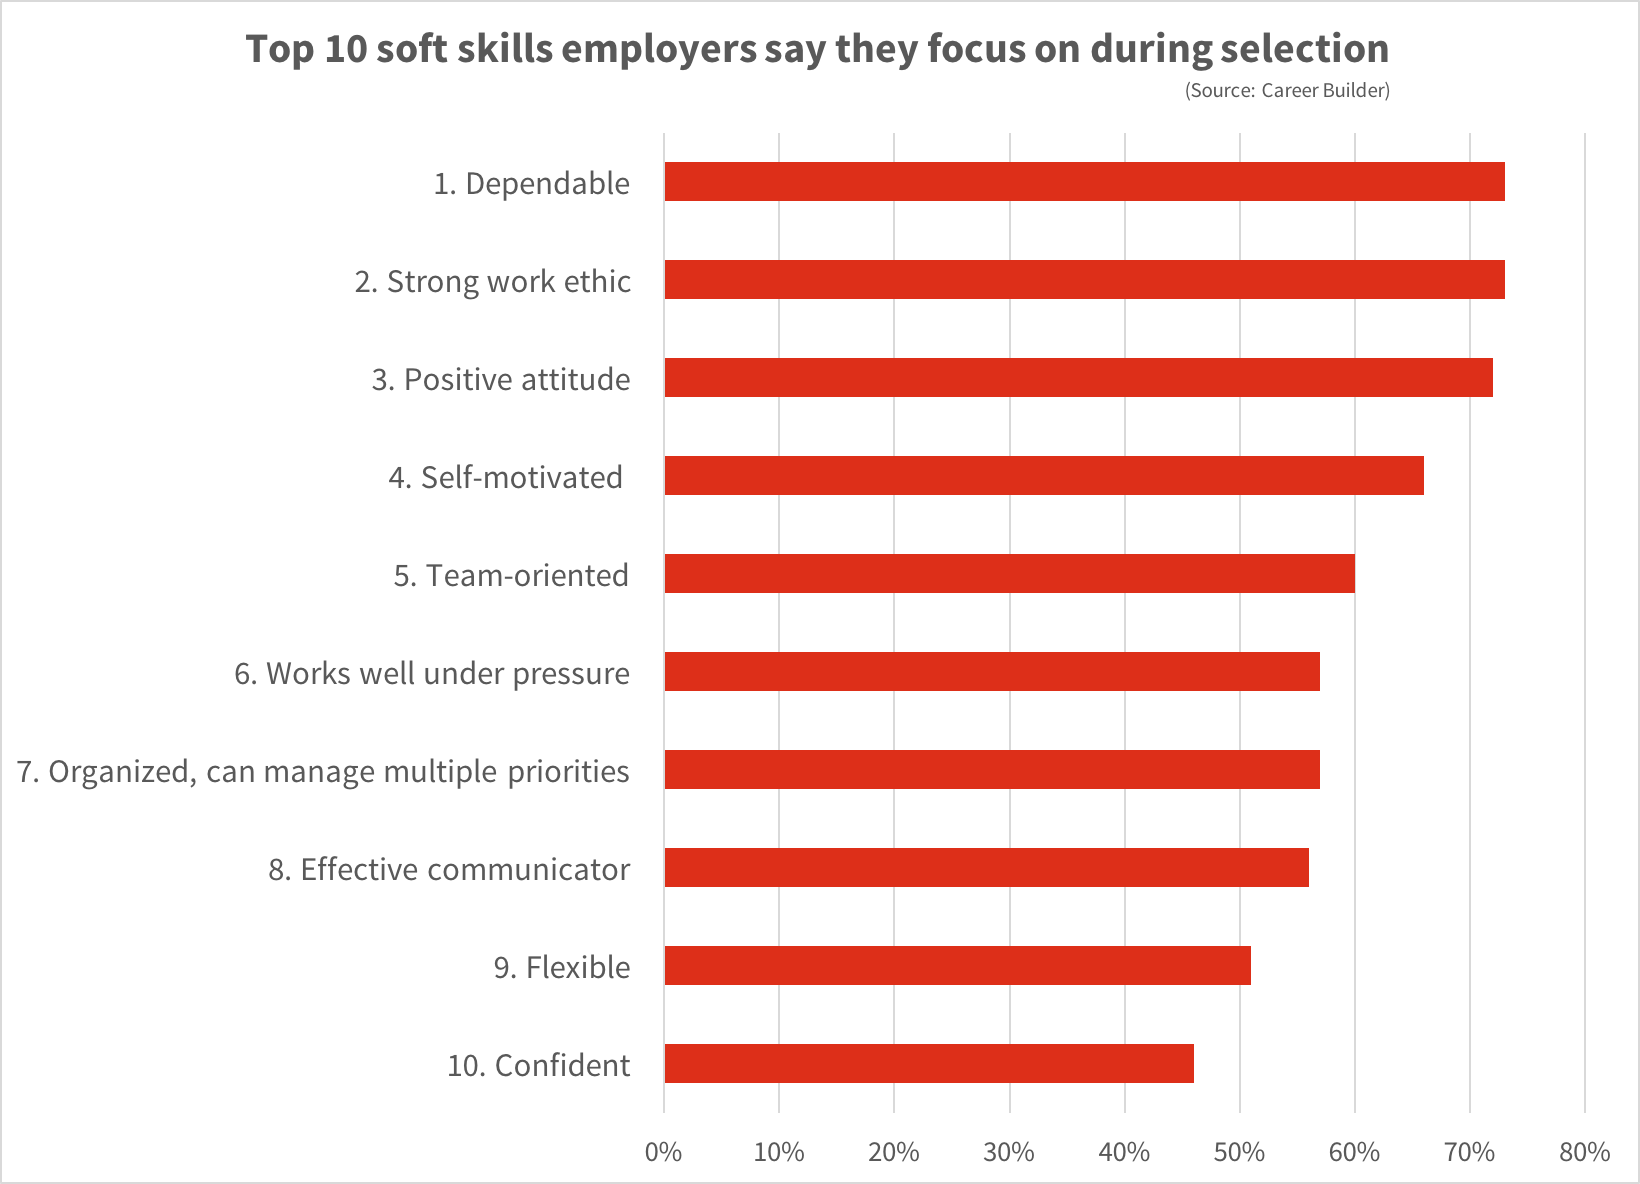 the hard facts about soft skills powerimprove productiviteit productivity training skills vaardigheden time management timemanagement stressmanagement